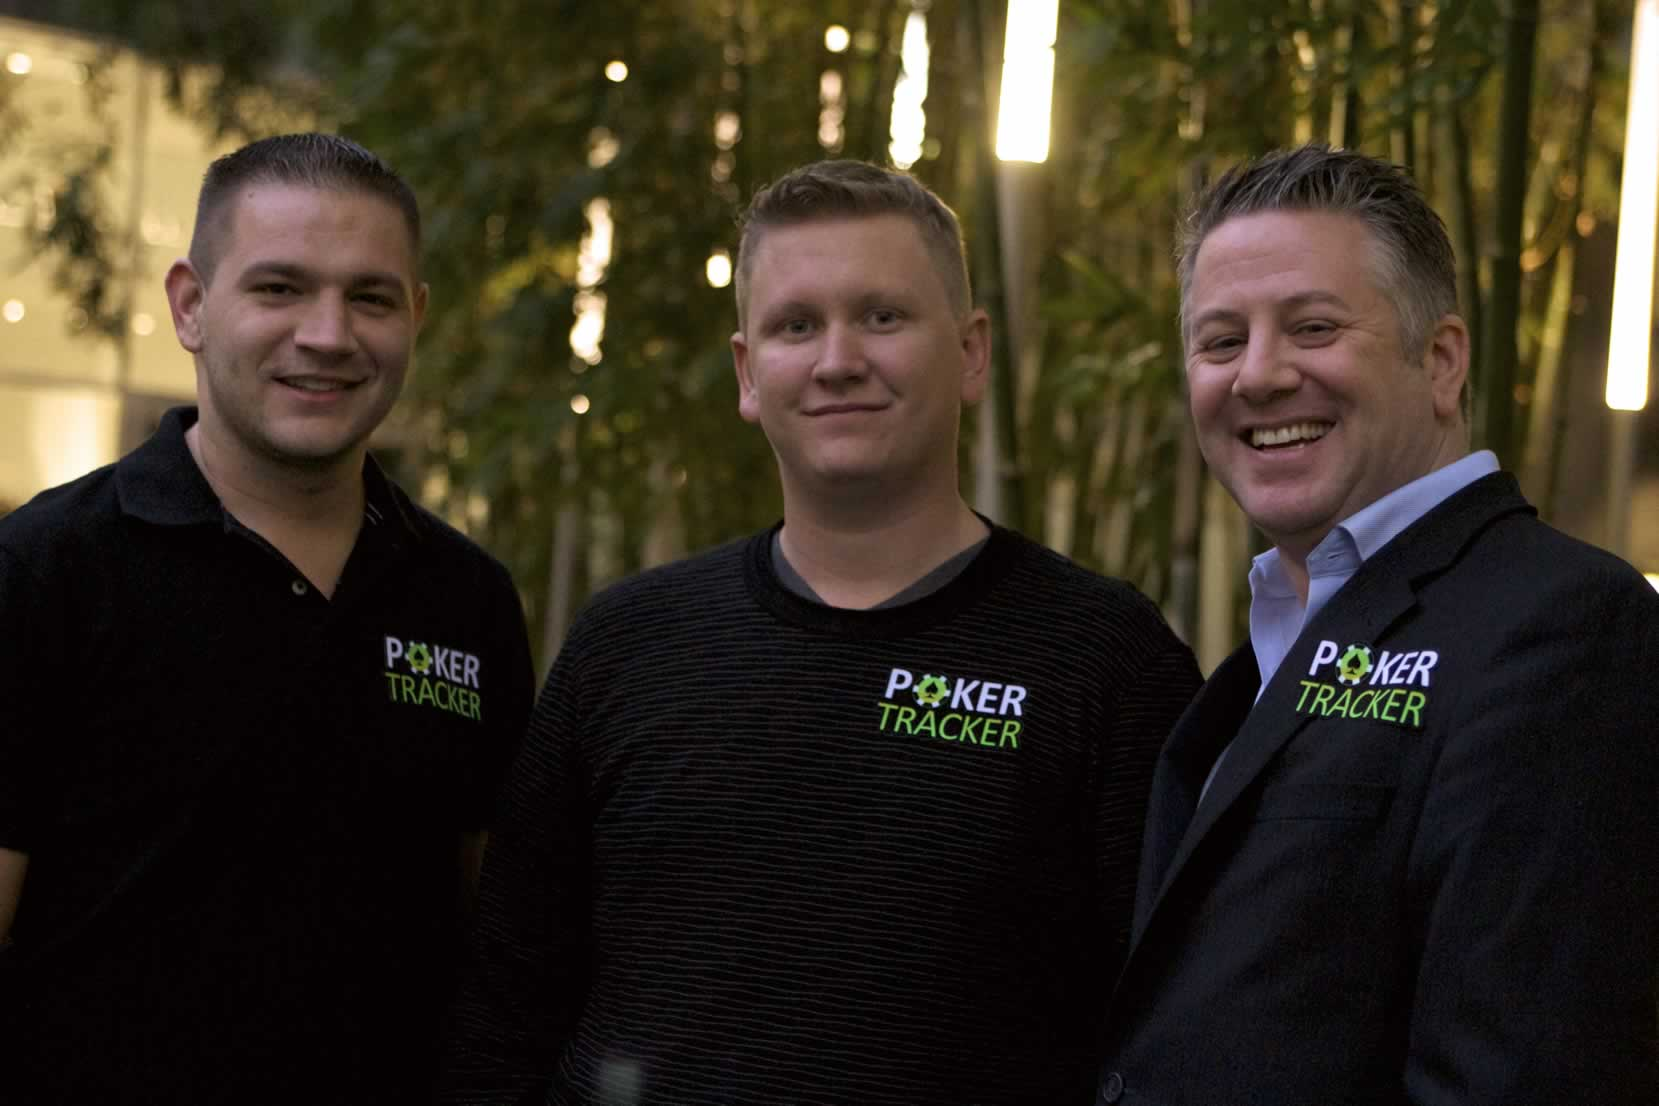 PokerTracker management team with Ben Lamb